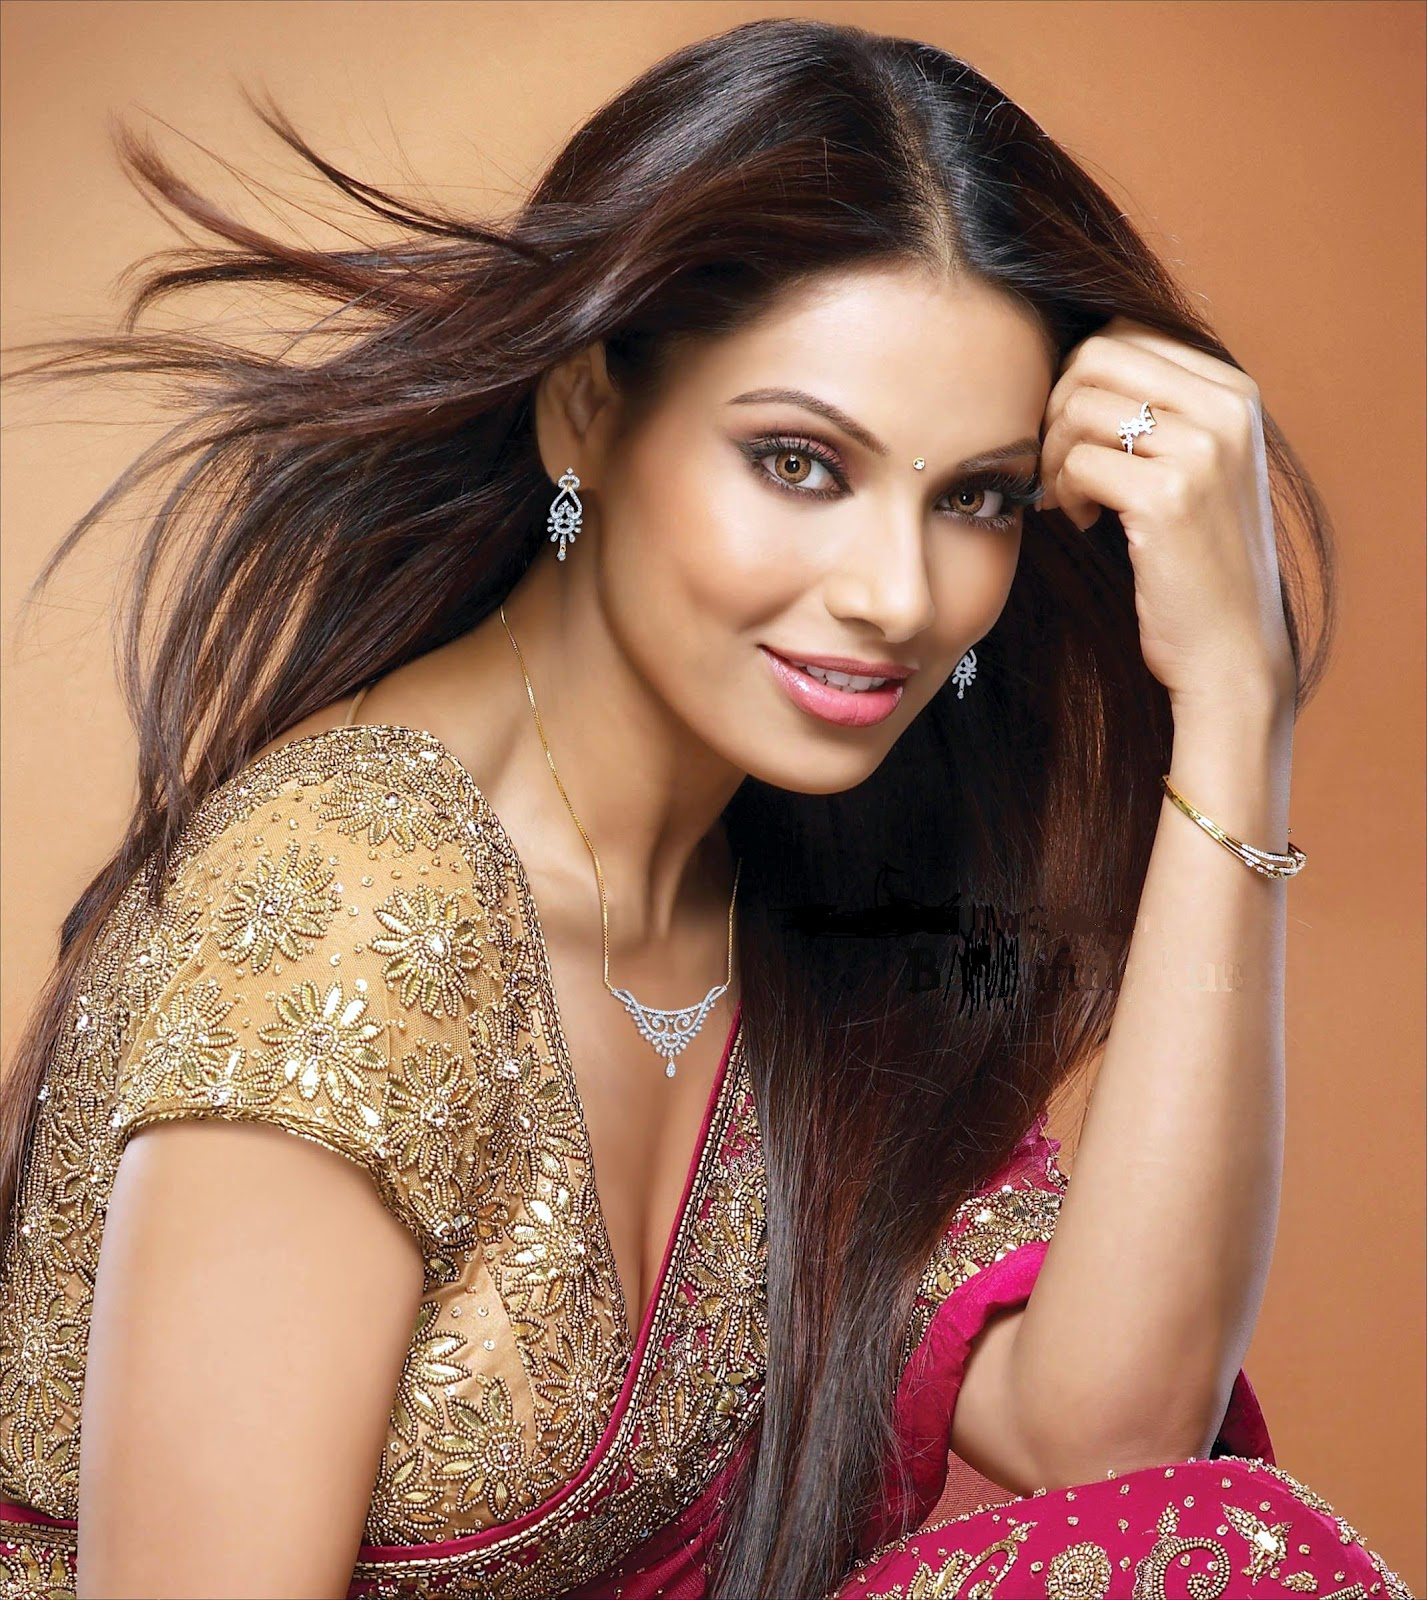 bipasha basu unseen photo gallery | actress images - heroines photos